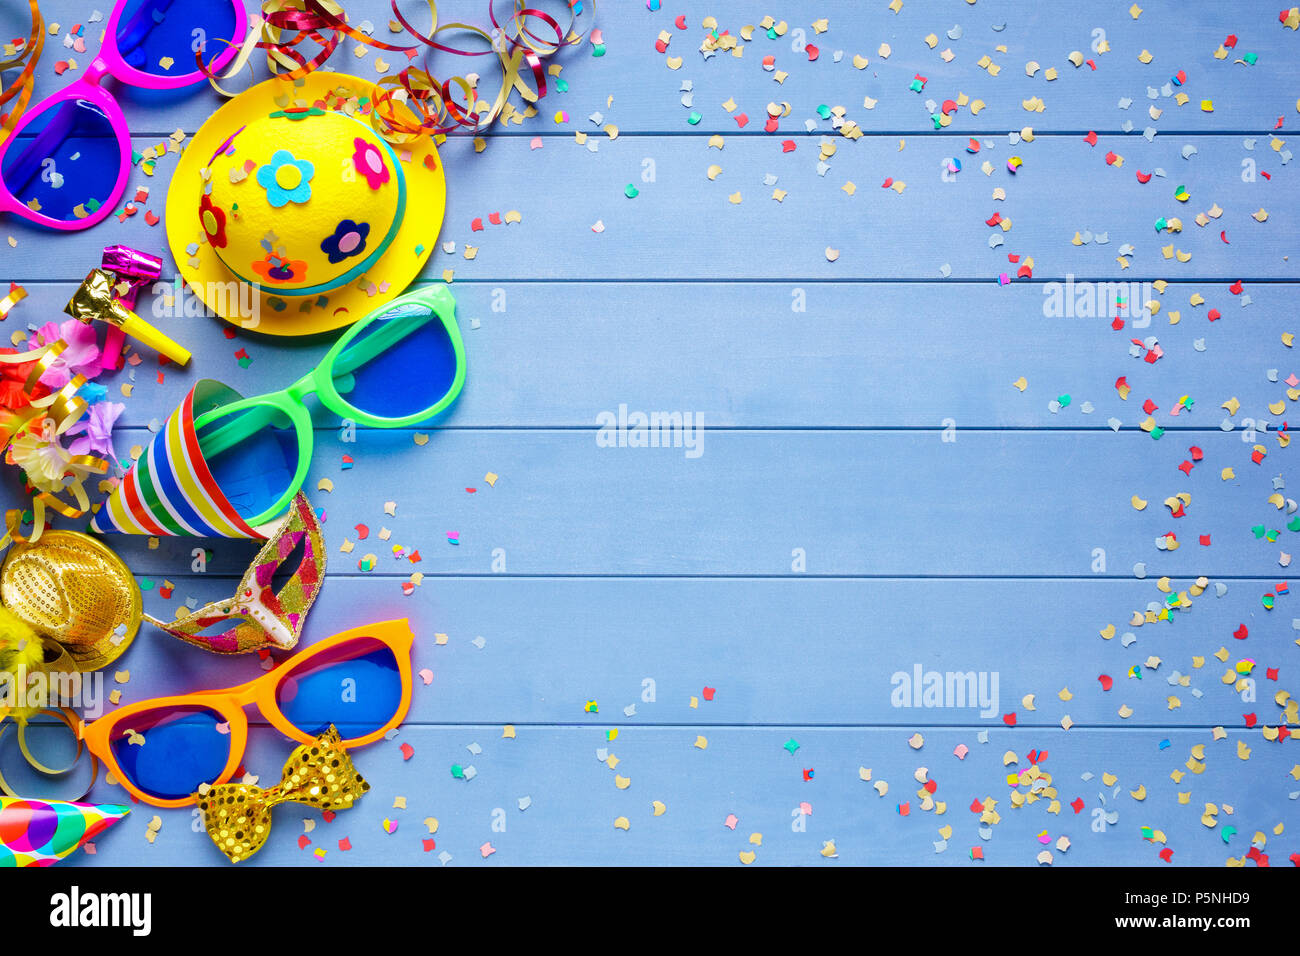 colorful party birthday or carnival background stock photo